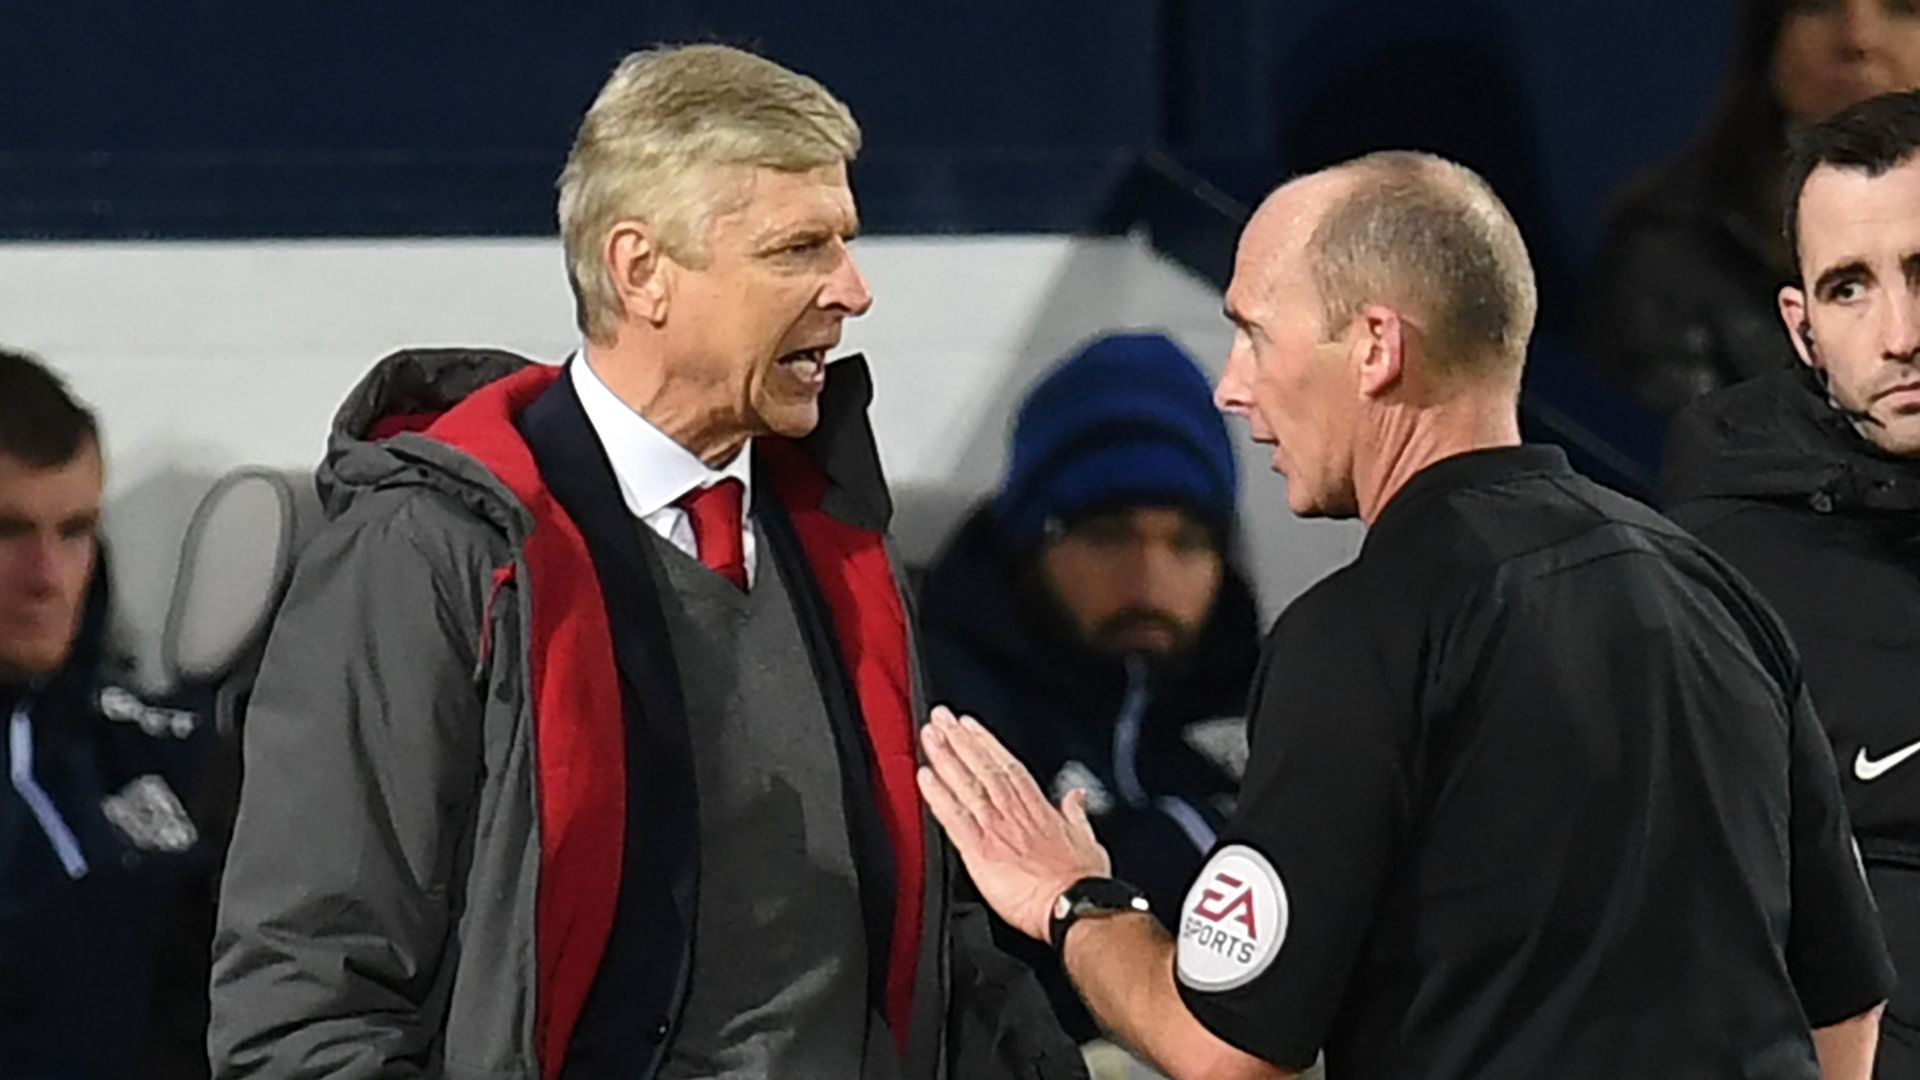 FA says Wenger called ref Dean 'disgrace'